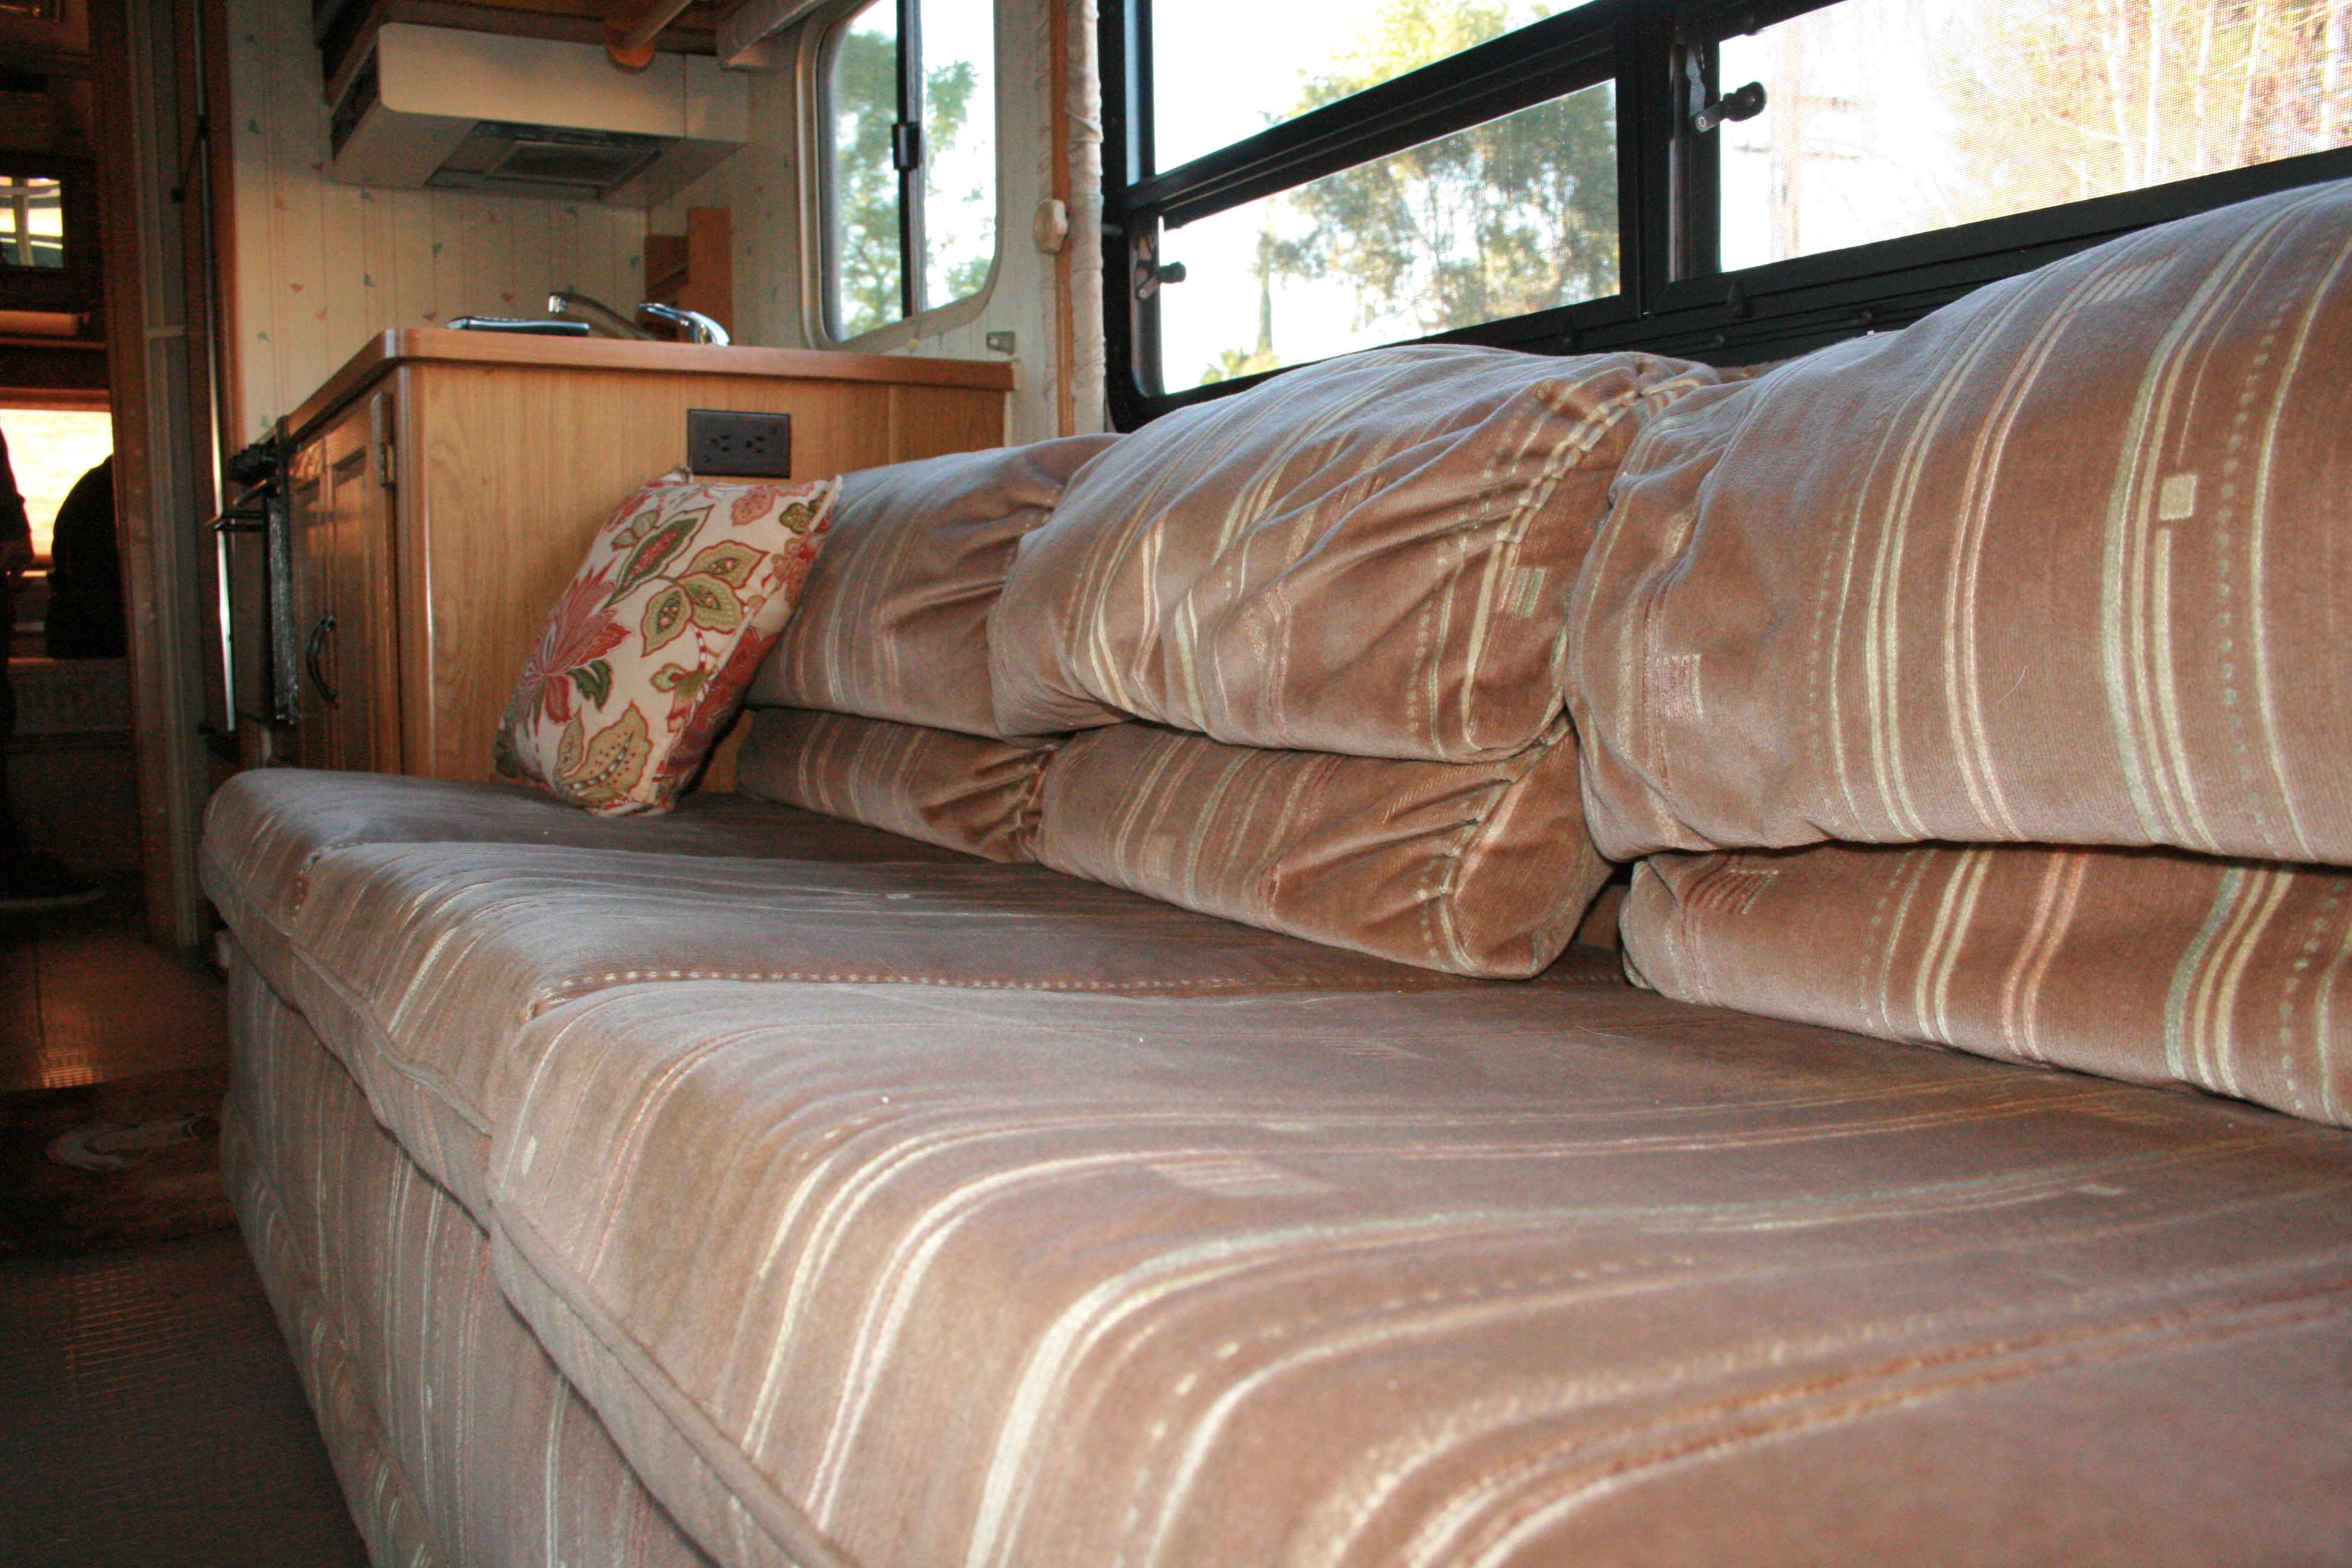 Rv Renovation Jackknife Couch Before After Rv Renovations Rv